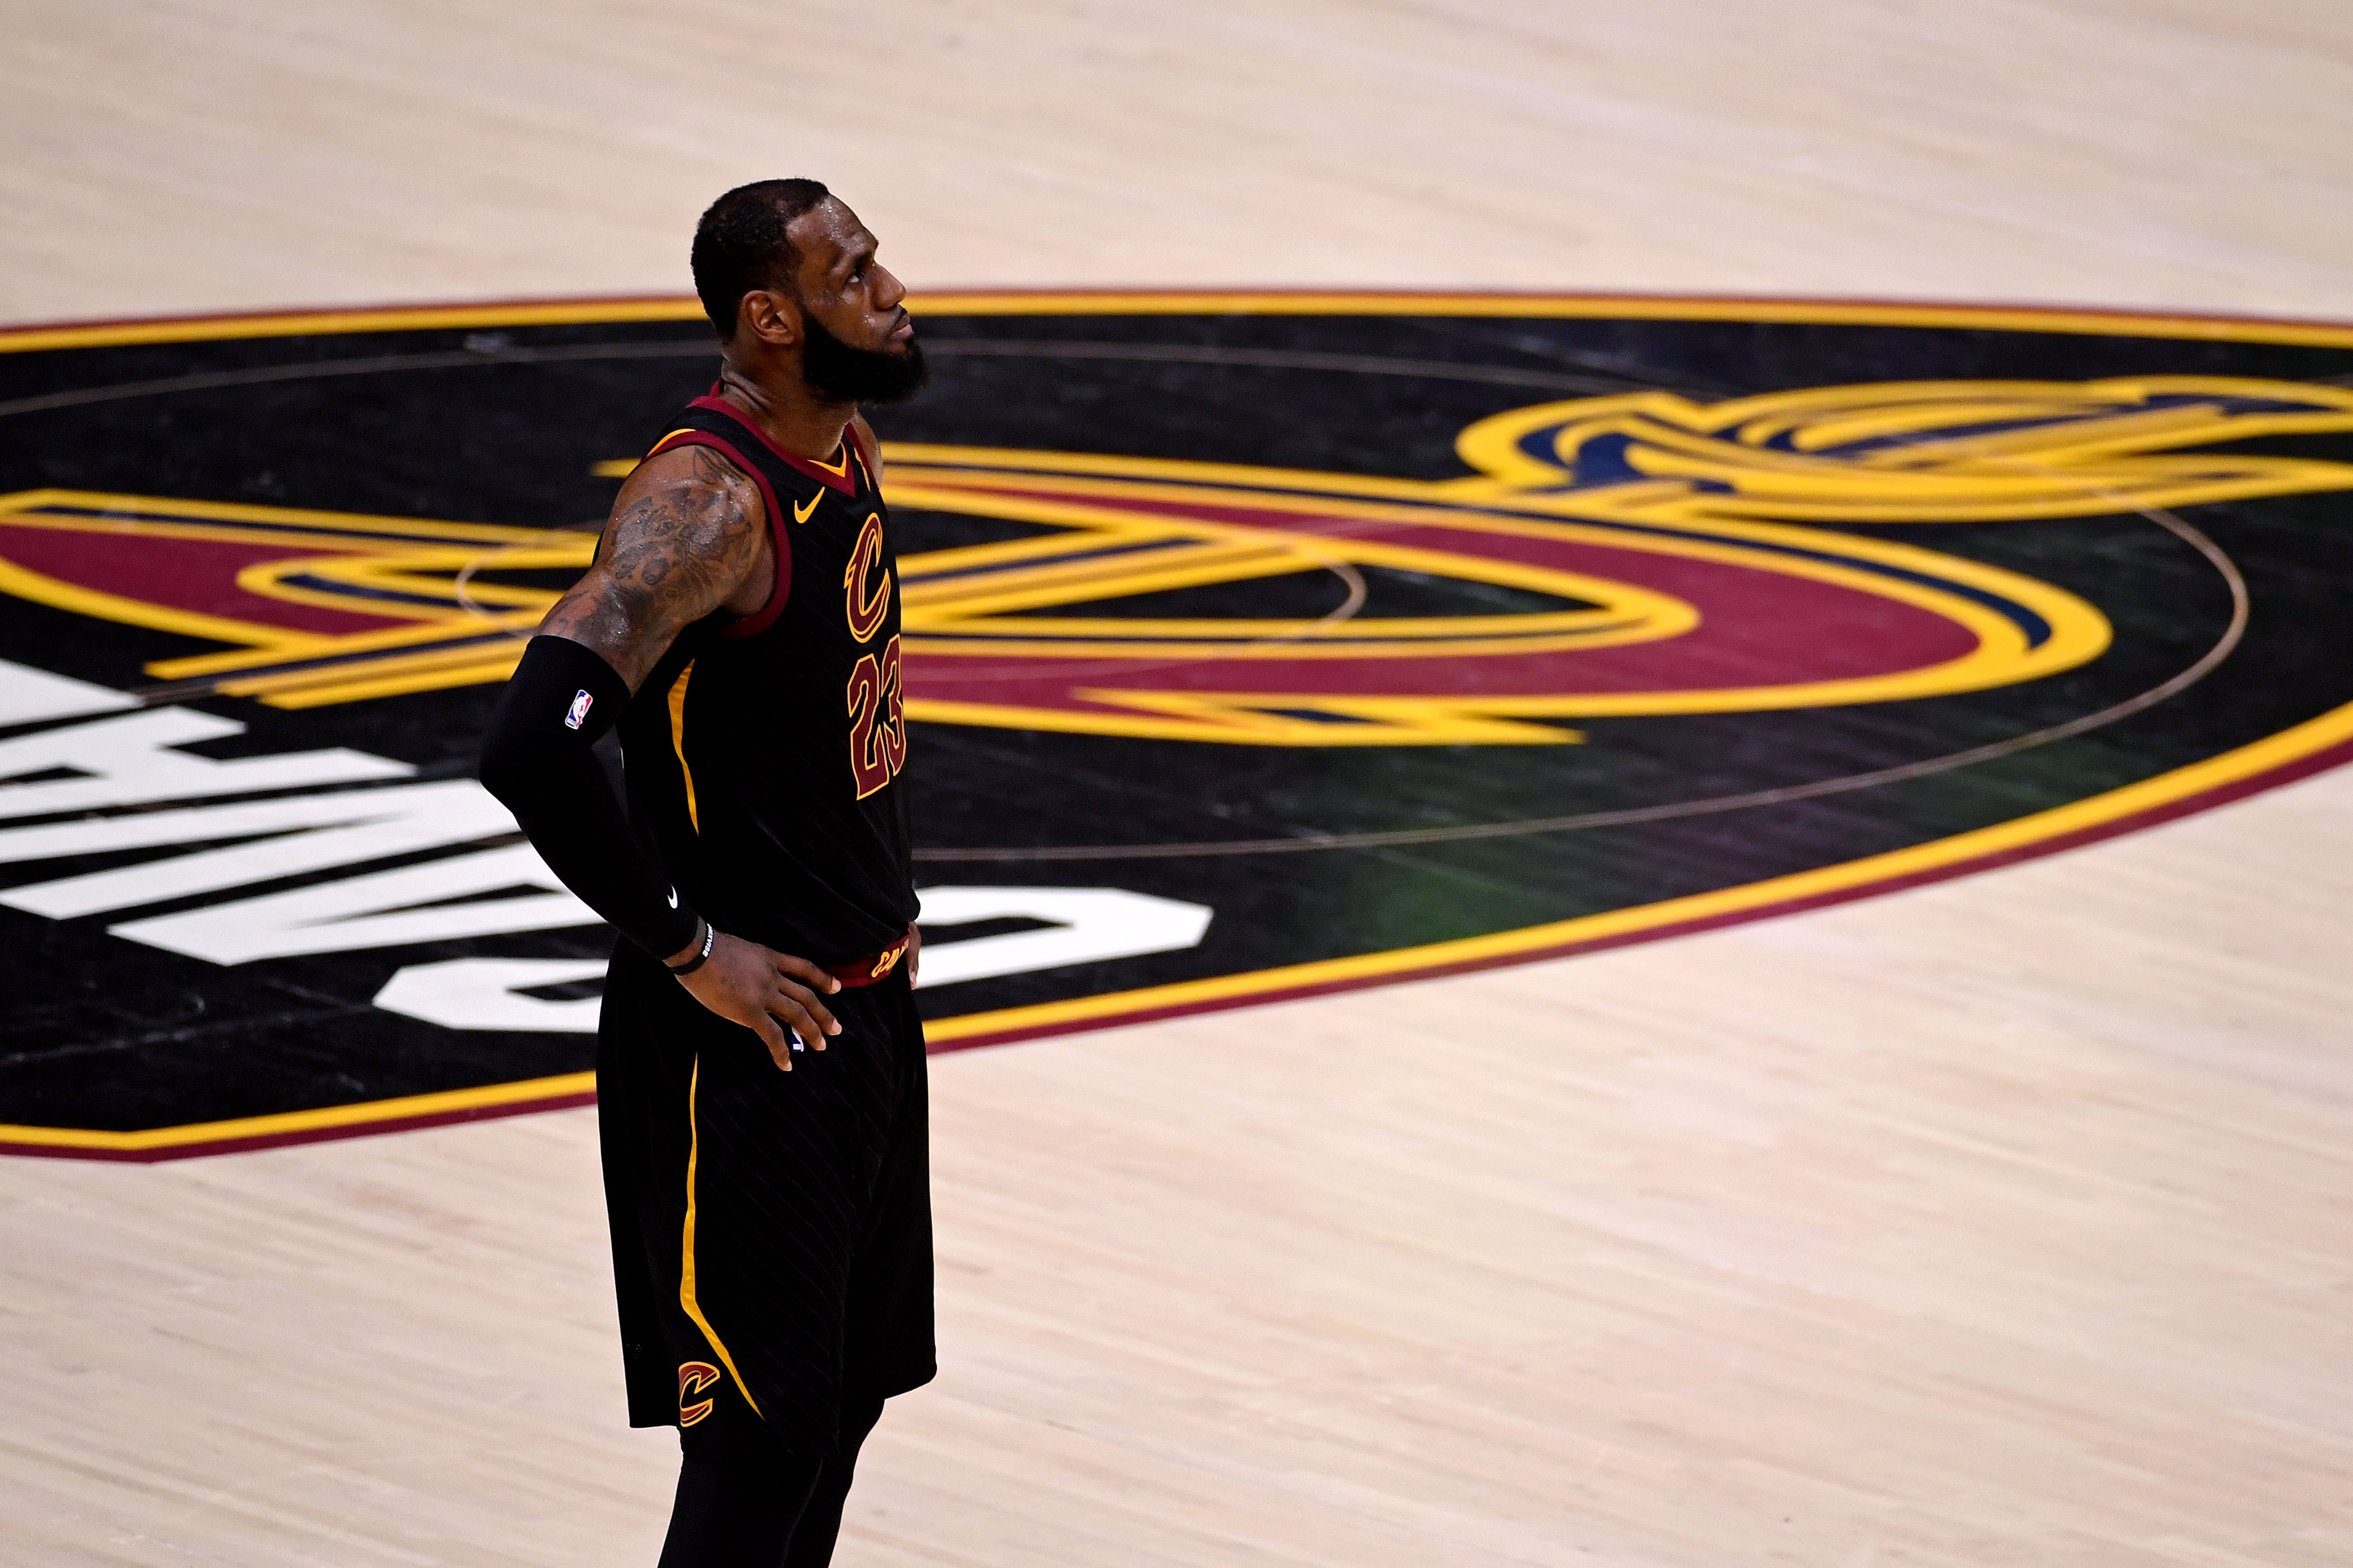 LeBron James just became the first player to get swept in